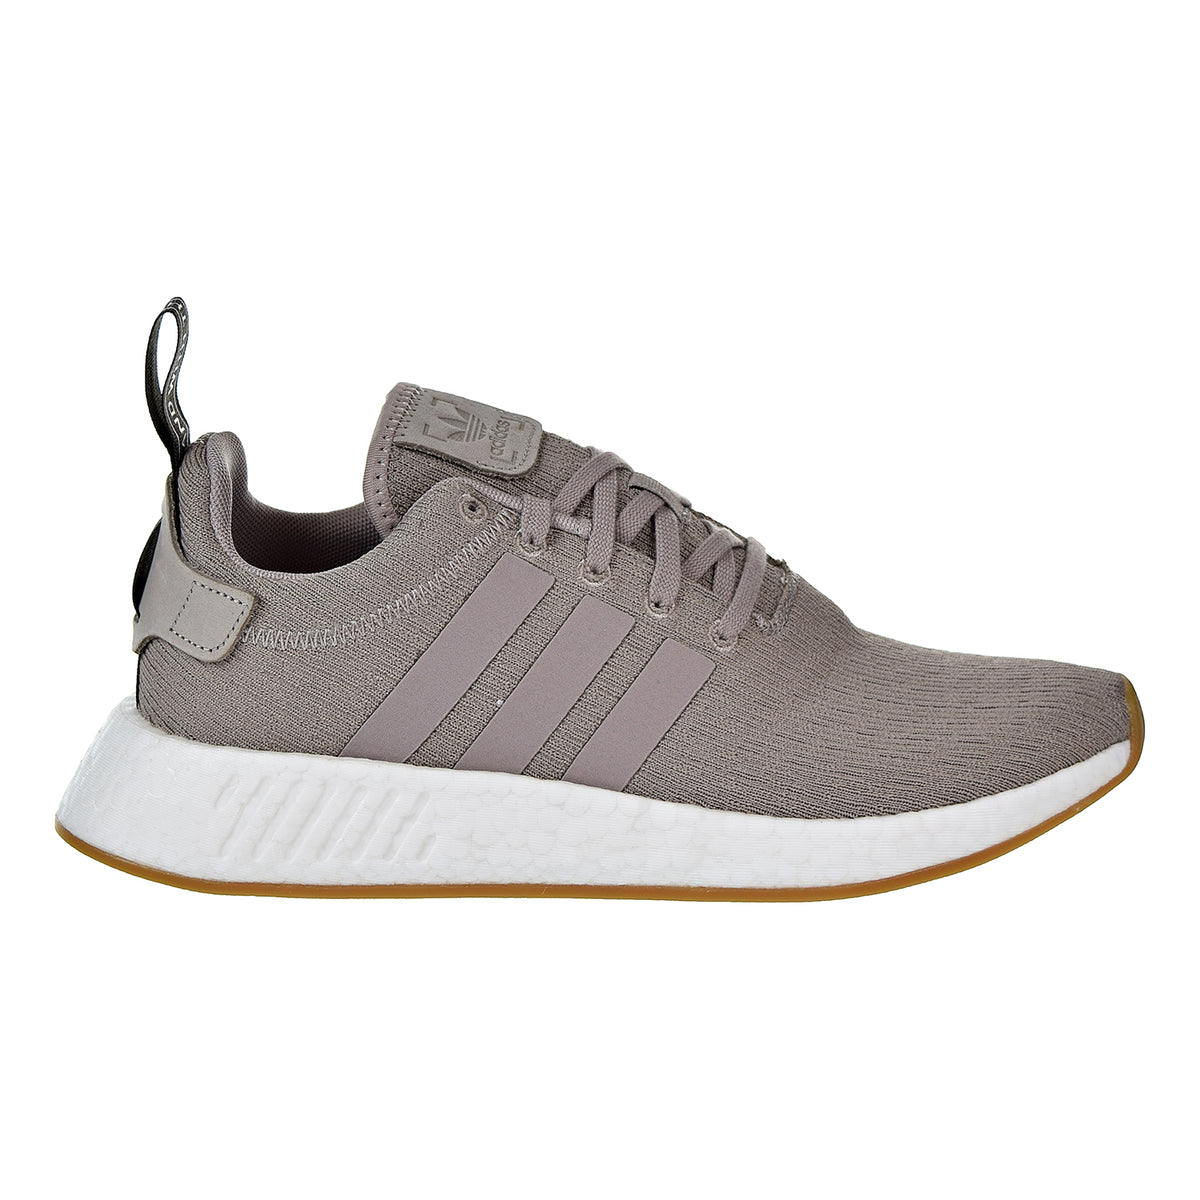 Adidas NMD_R2 Men's Shoes Beige-Pink